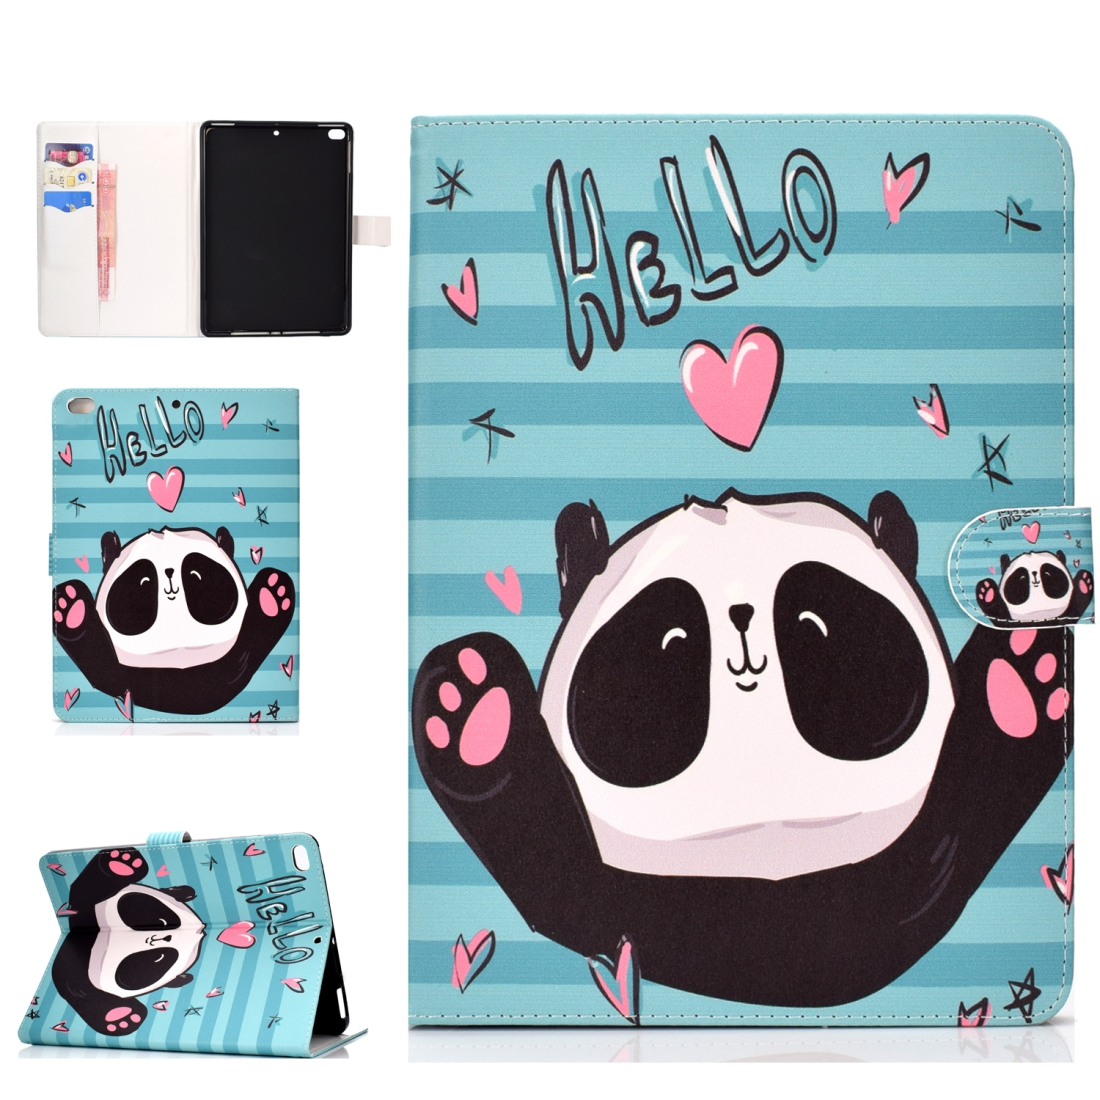 iPad 5th Generation Case Fits iPad 5,6,8, Stylish Leather Design & Auto Sleep Function (Panda)